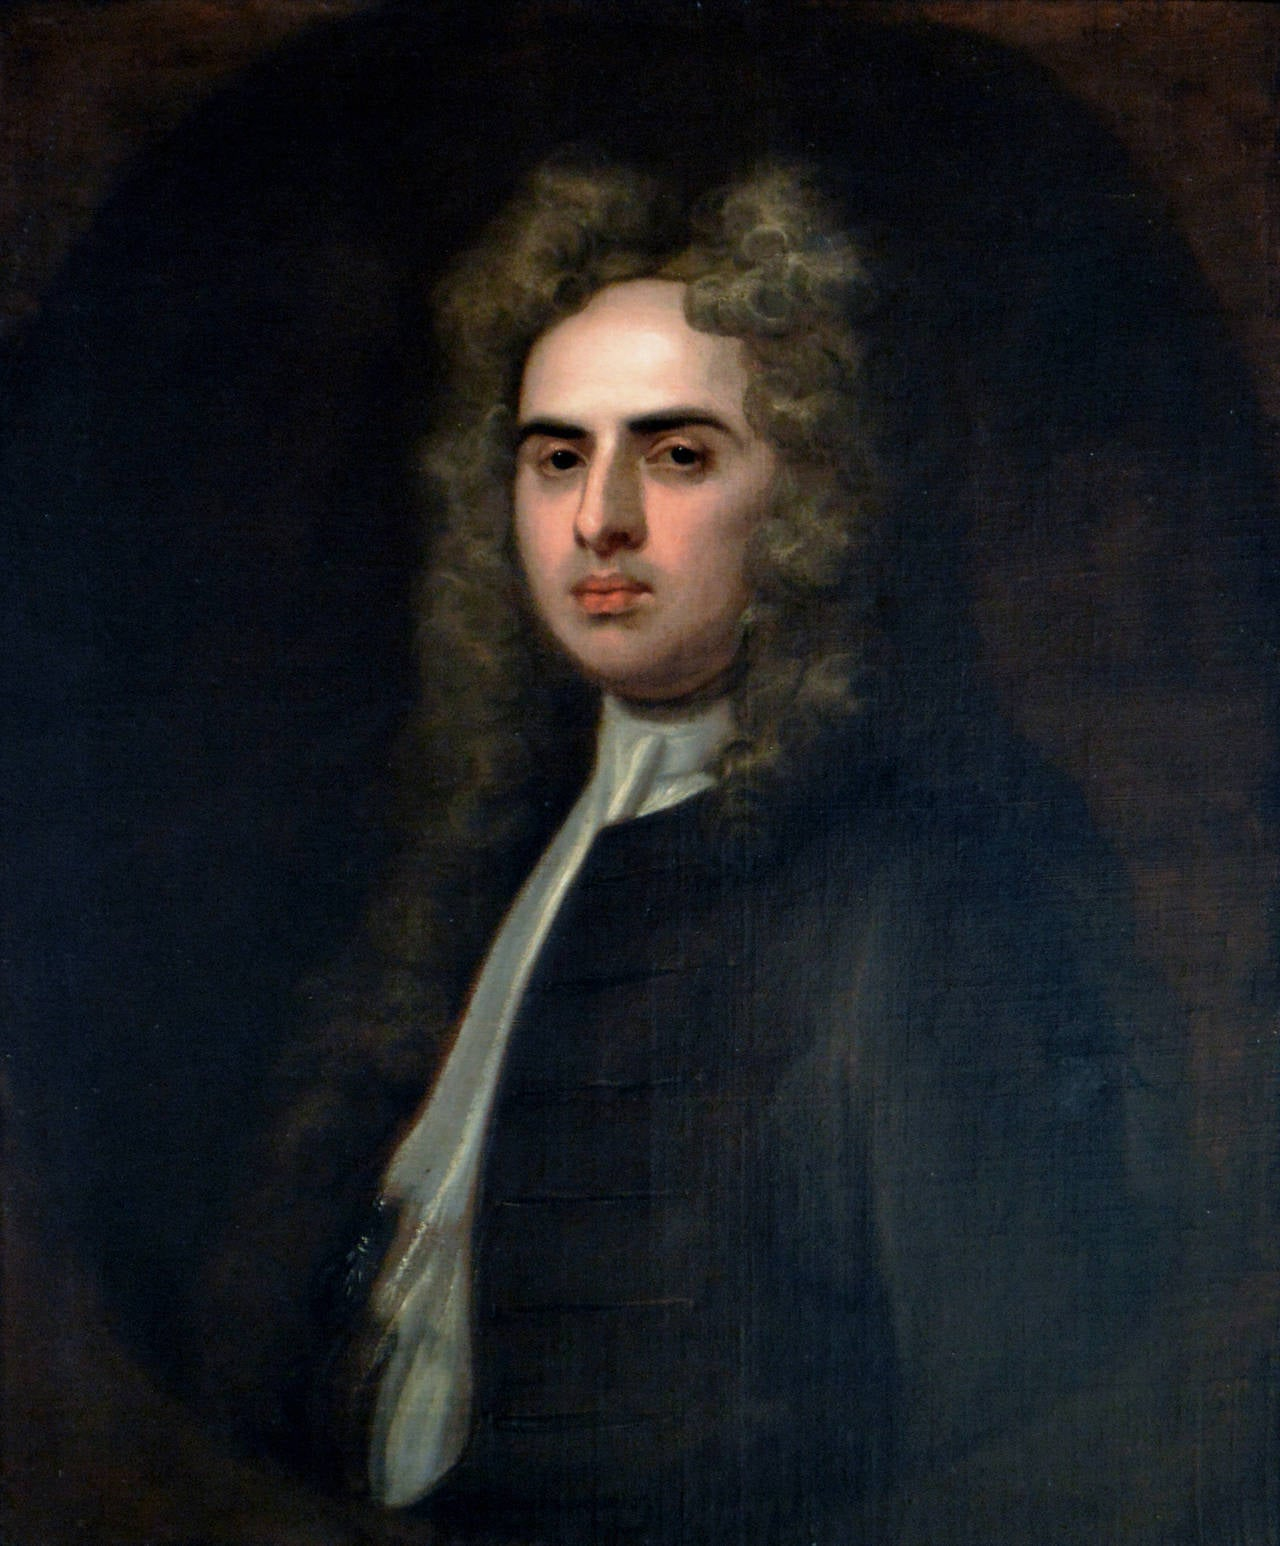 a biography of jonathan swift Jonathan swift, one of the foremost prose satirist in the english language, was also a reputed political pamphleteer, essayist, poet and cleric born in ireland, he lost his father early on in life and was mostly brought up by his uncle.